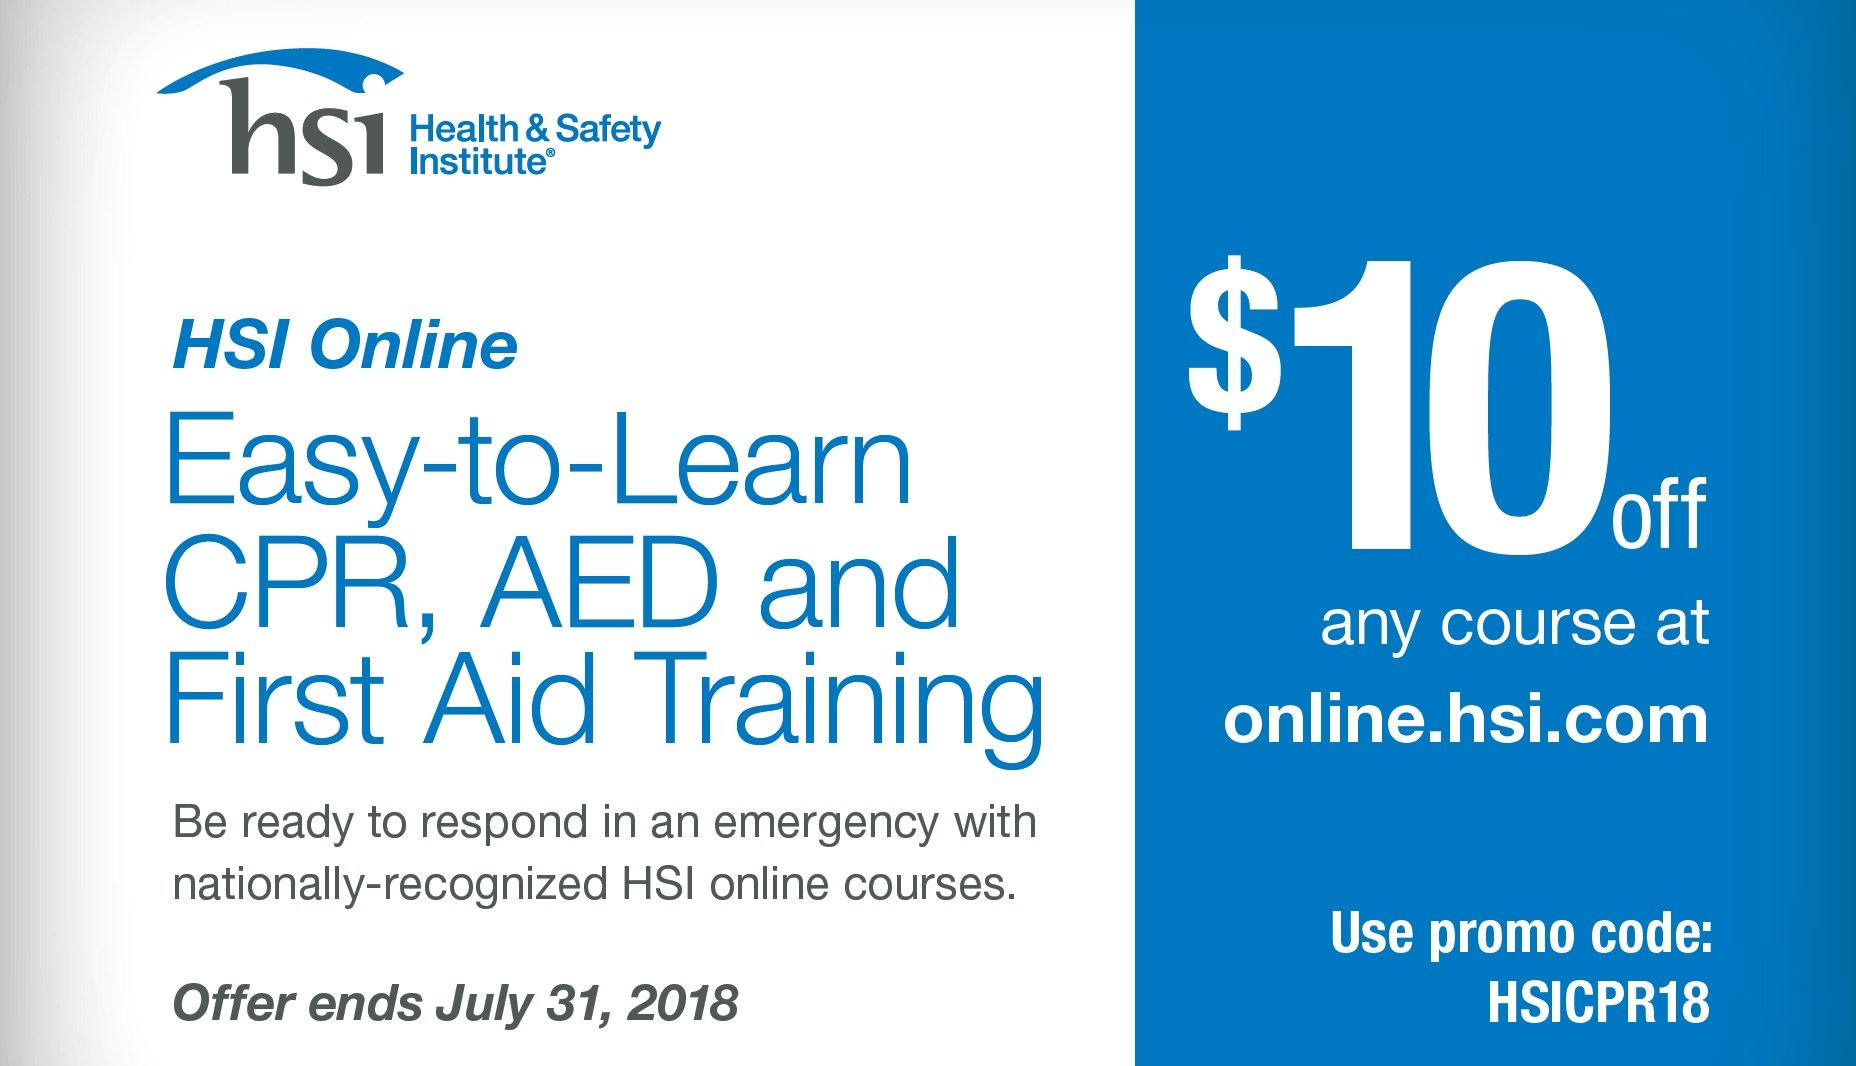 Cpr And First Aid Courses Hsi Online